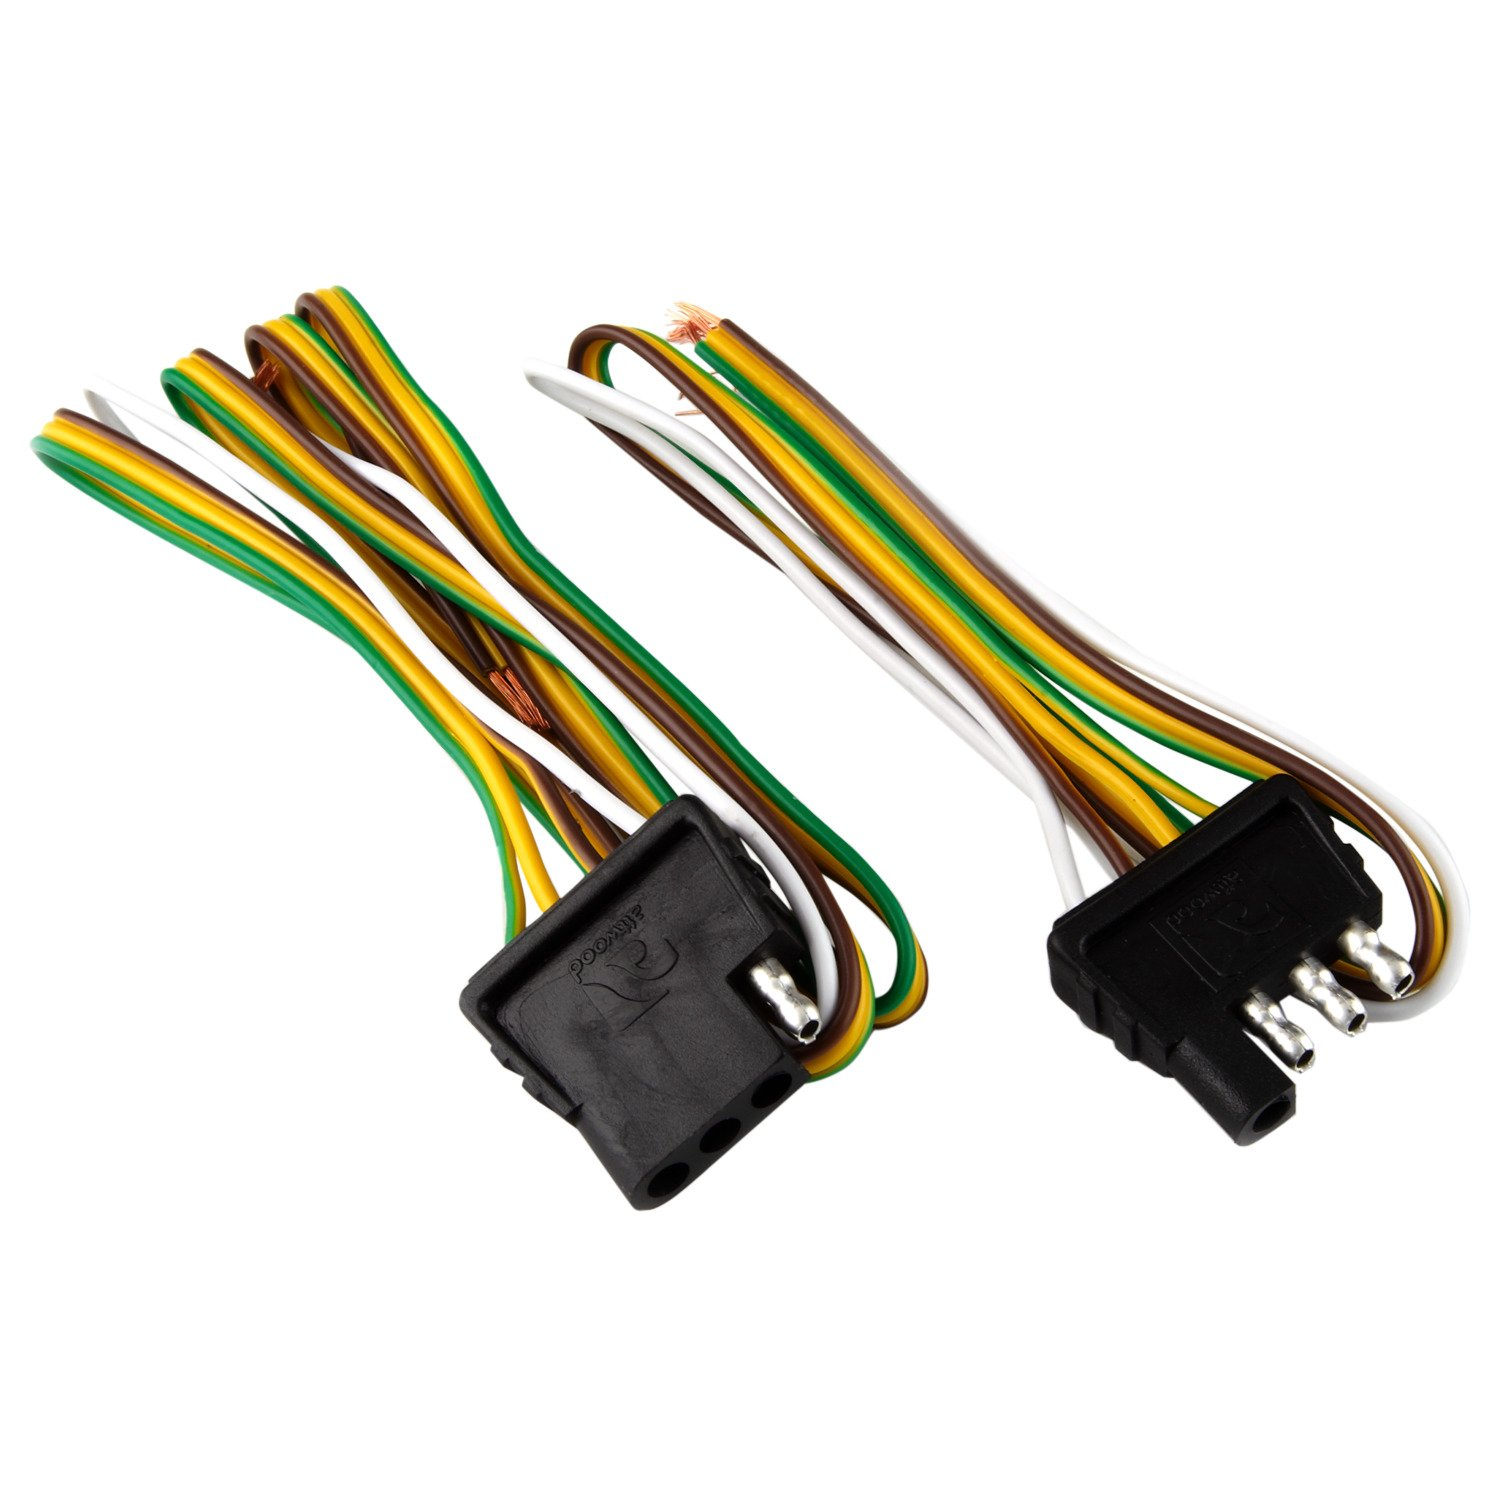 hight resolution of attwood 4 way flat wiring harness kit for vehicles and trailers 4 flat wiring harness